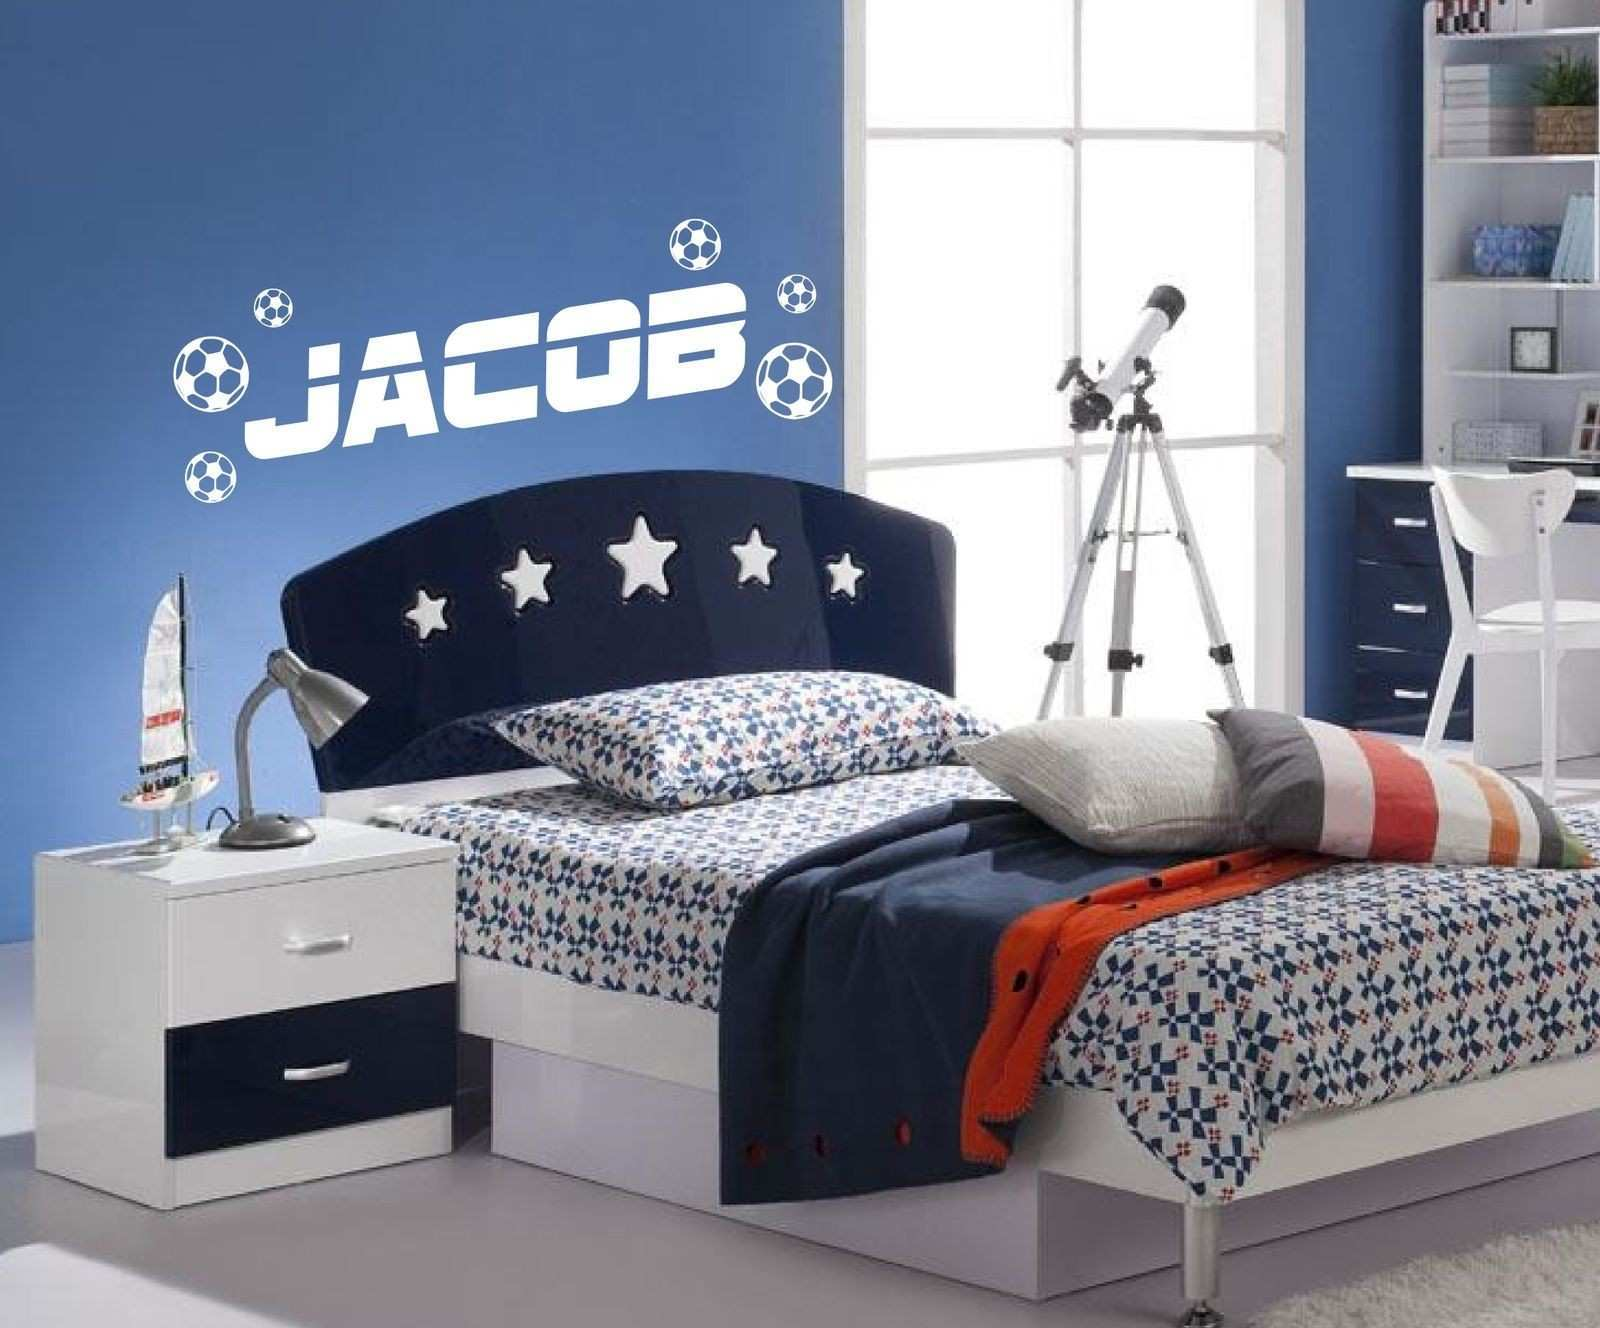 Wall Art Ideas For Bedroom Boys Free Wall Arts Wall Art For